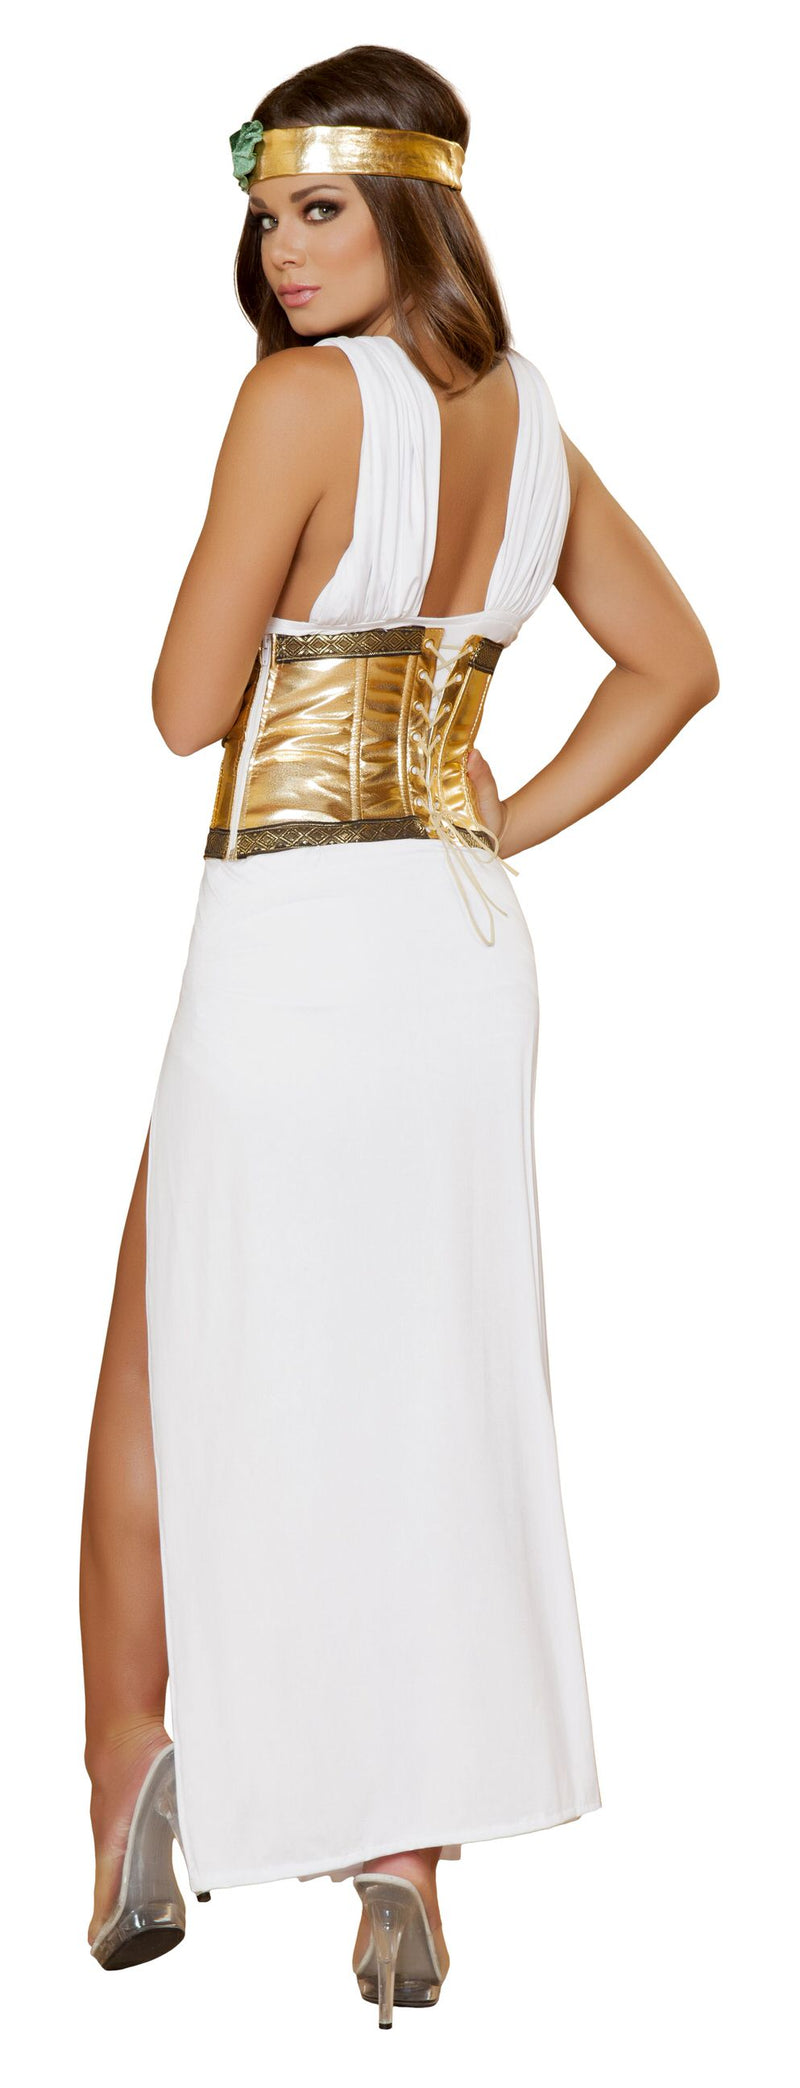 4 Piece Sexy Greek Goddess Aphrodite Adult Women's Costume - Fest Threads